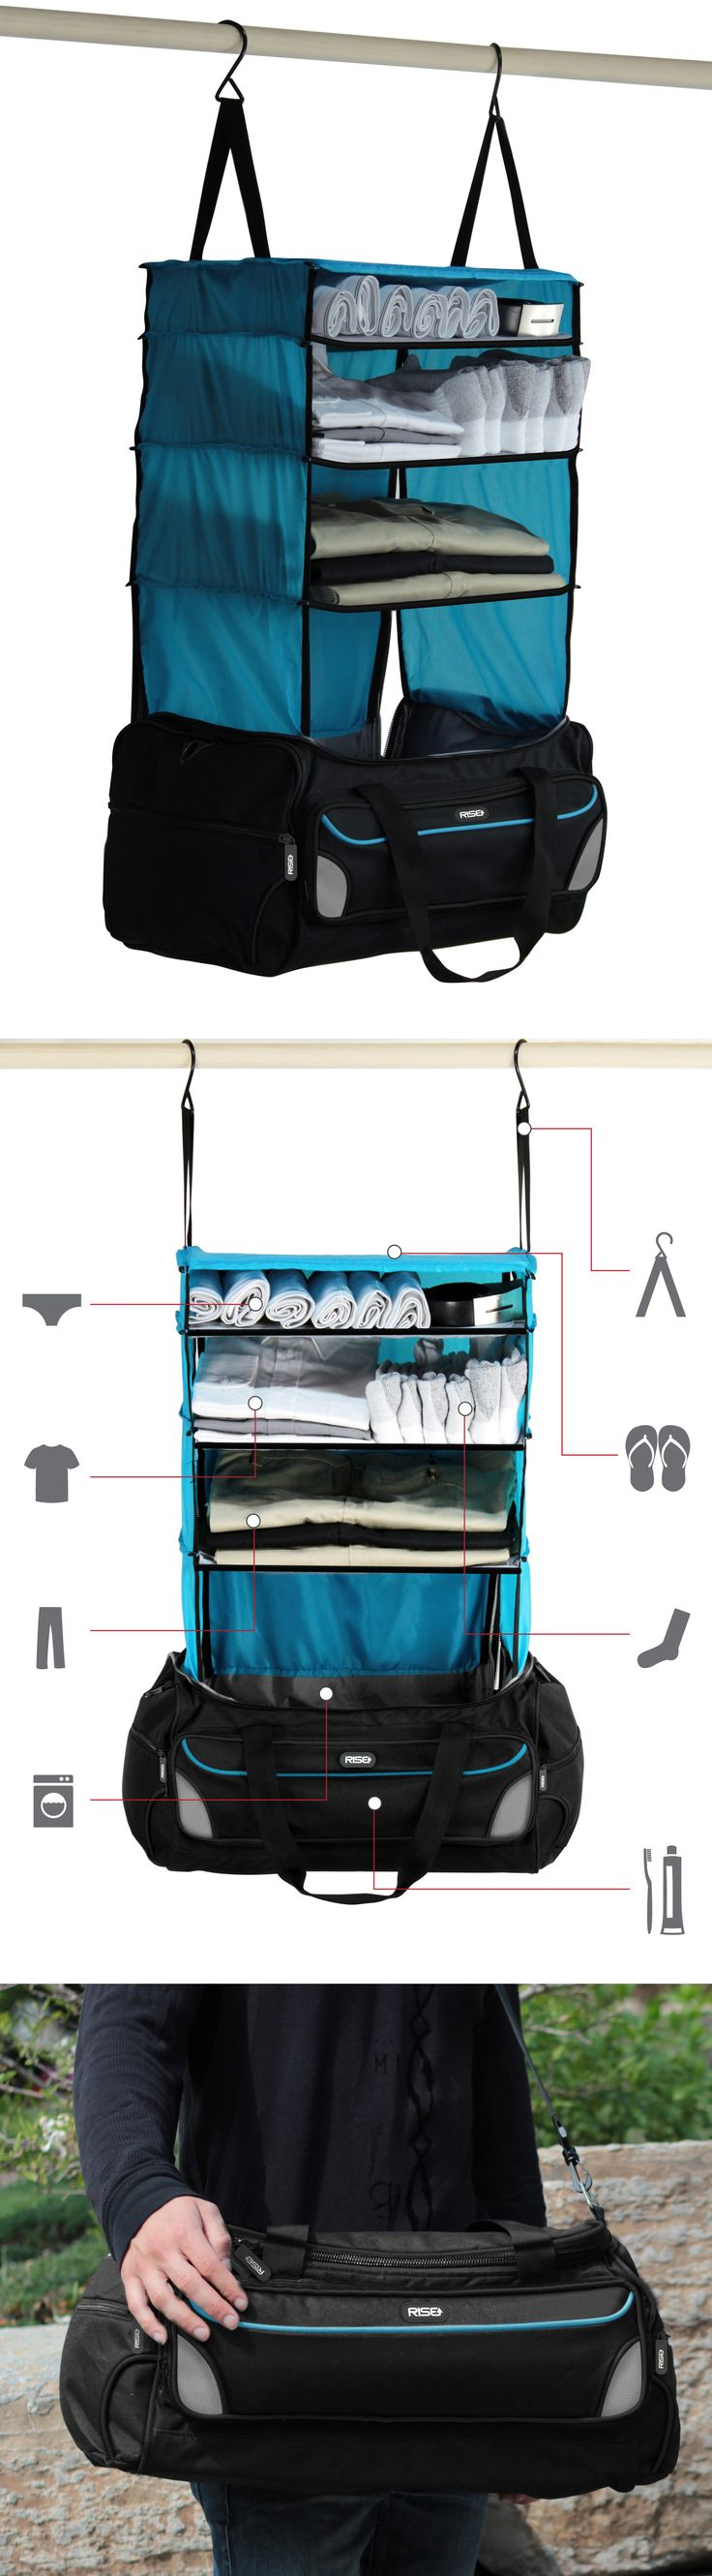 Rise and Hang // Forget unpacking, this clever weekender bag has built-in hanger shelves! Genius - I NEED this for travelling! #product_design: